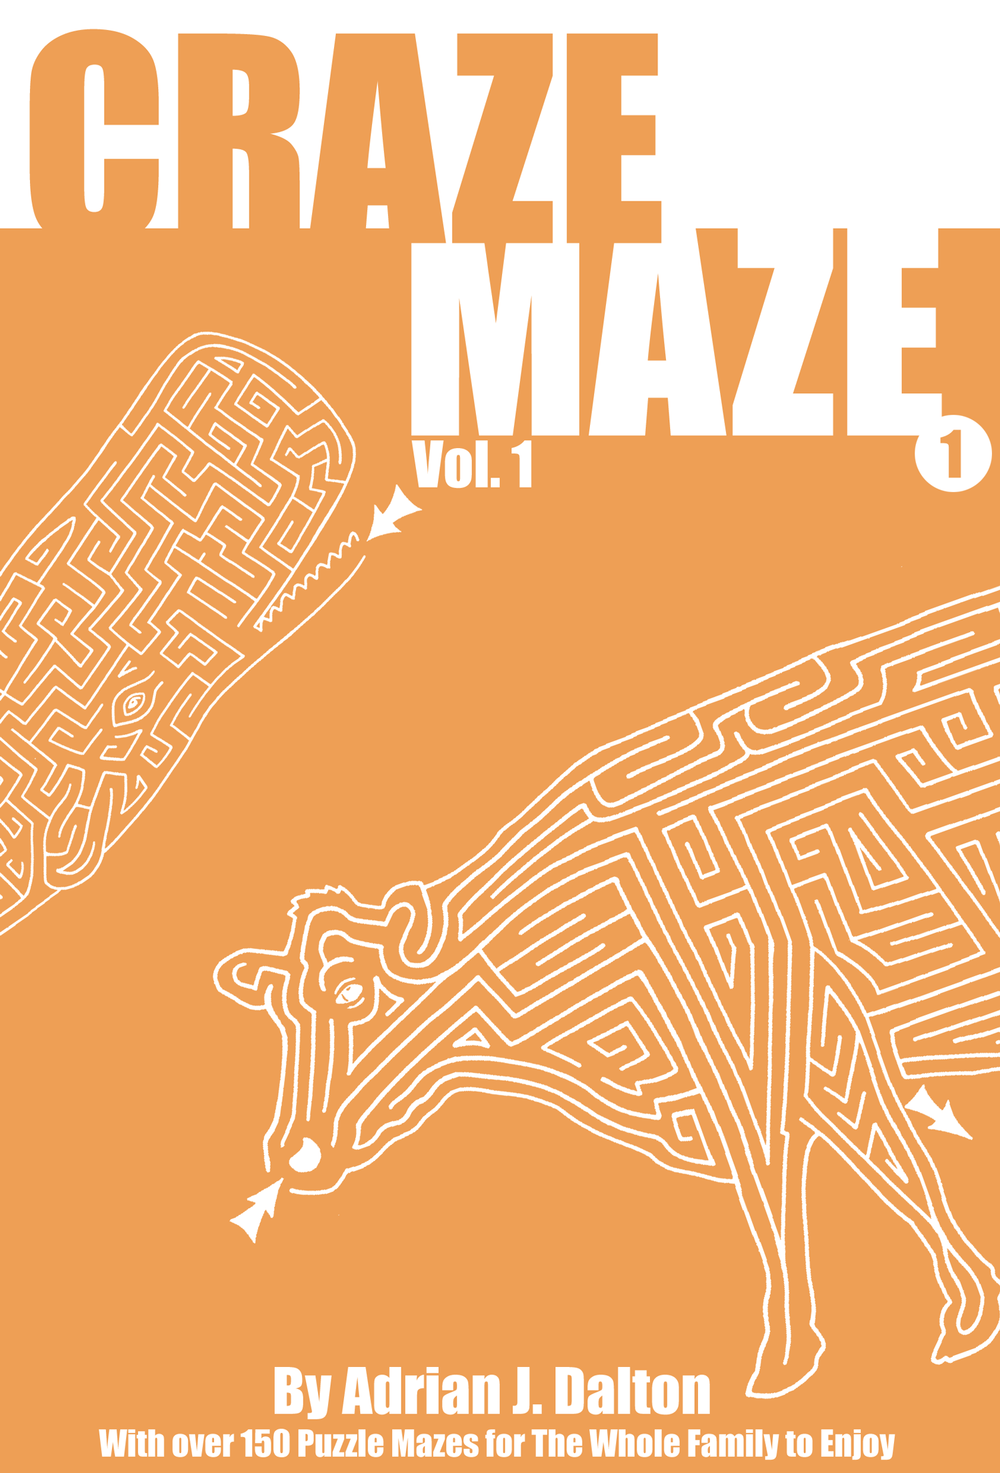 CRAZEMAZECOVER2.png